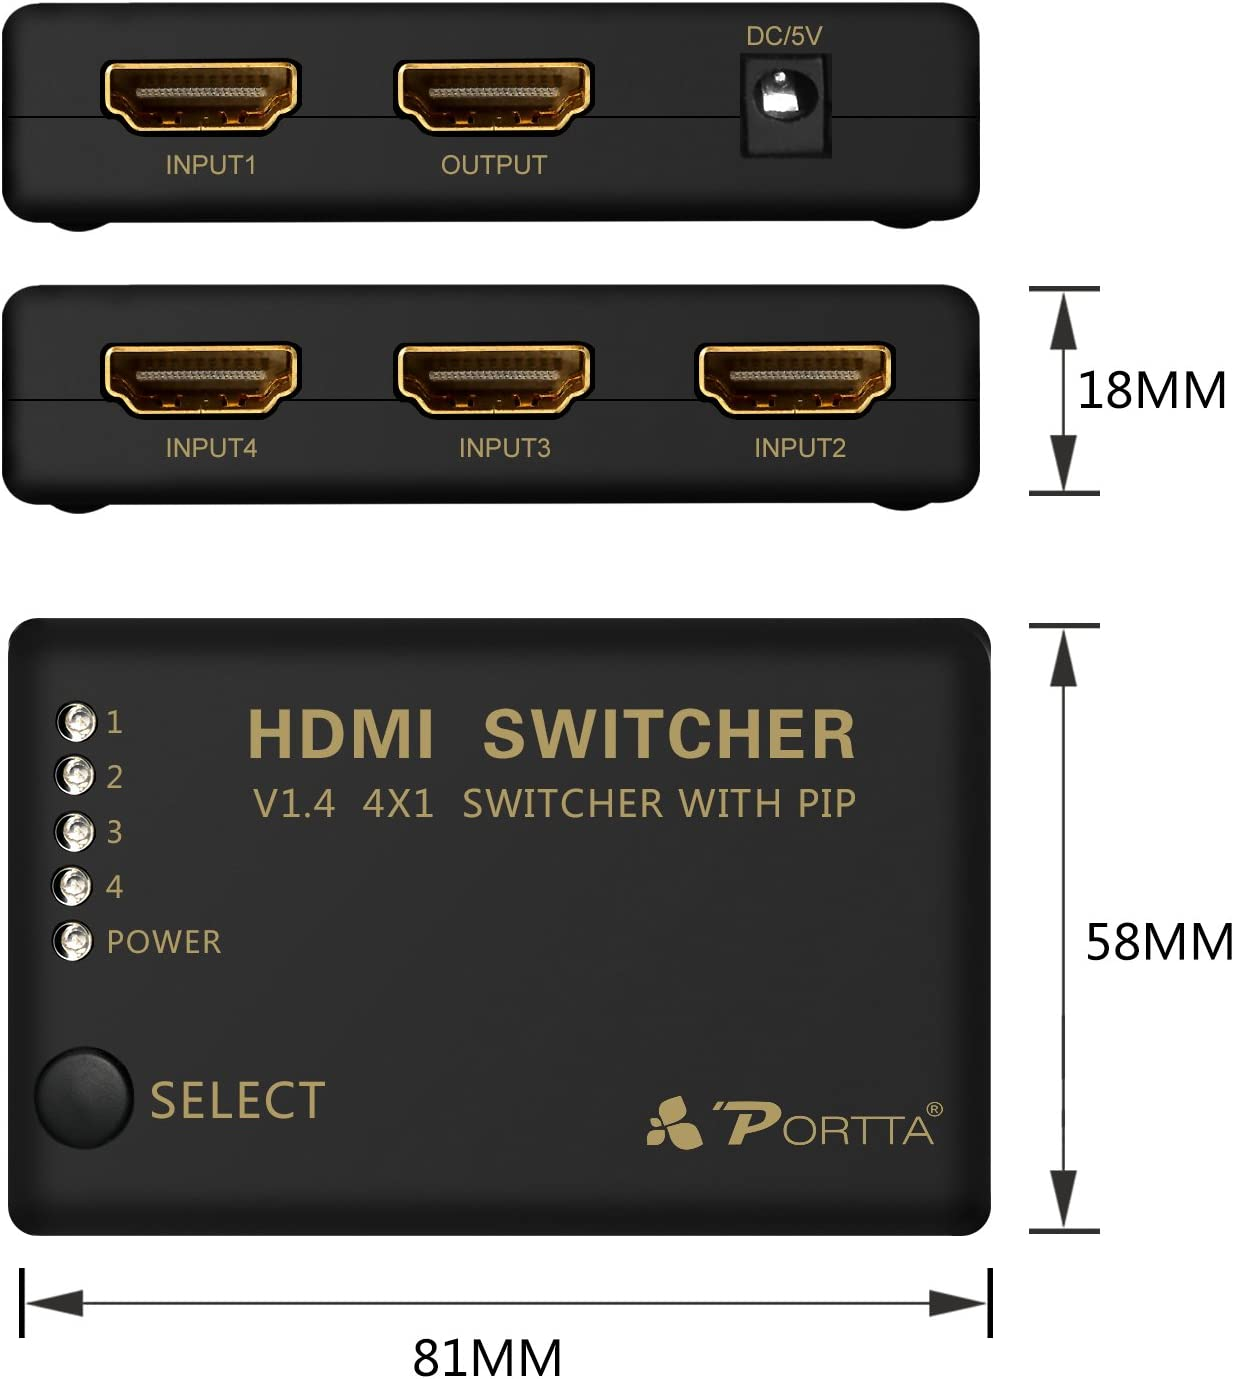 Portta HDMI Switch//Switcher 4 Port 4x1 v1.4 with PIP and IR Remote Support Full 3D 4k x 2k 1080p LPCM DTS Picture in Picture